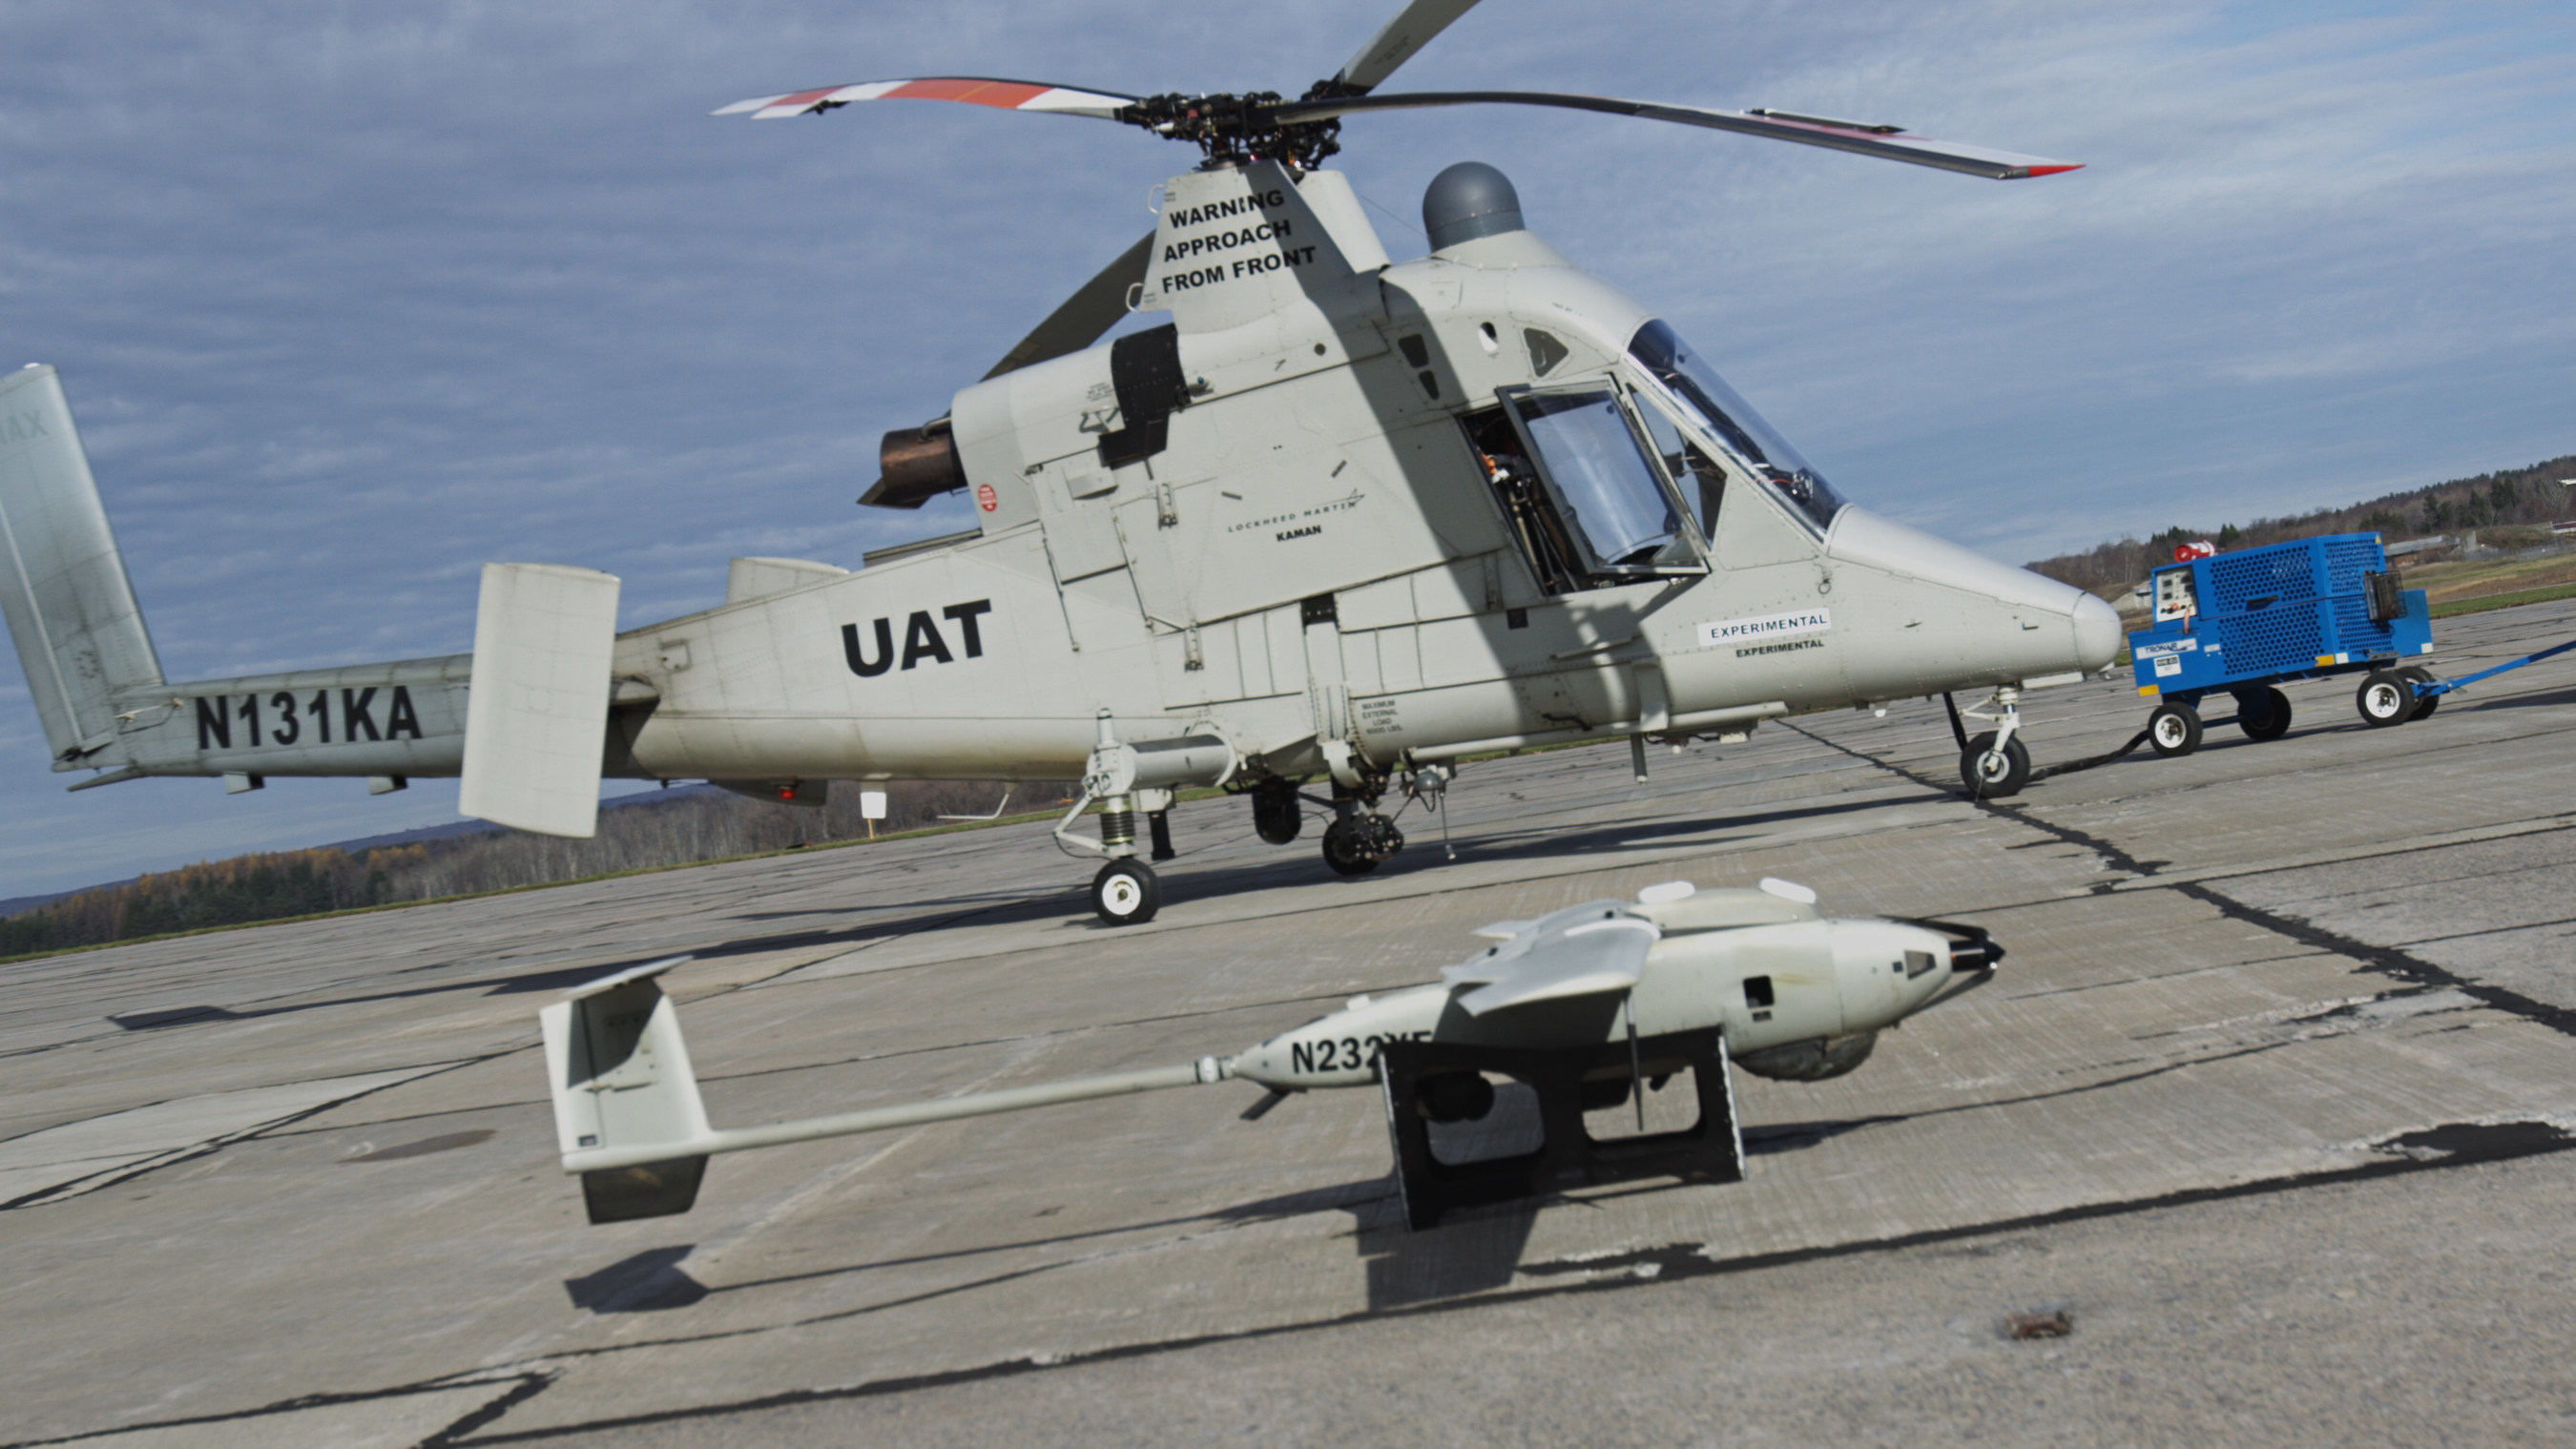 The Stalker XE UAS directed the unmanned K-MAX cargo helicopter to conduct water drops at a precise location to extinguish a fire. The Stalker XE and K-MAX operated in collaboration with a prototype UAS Traffic Management (UTM) system, which provides essential capabilities to enable safe UAS operations.